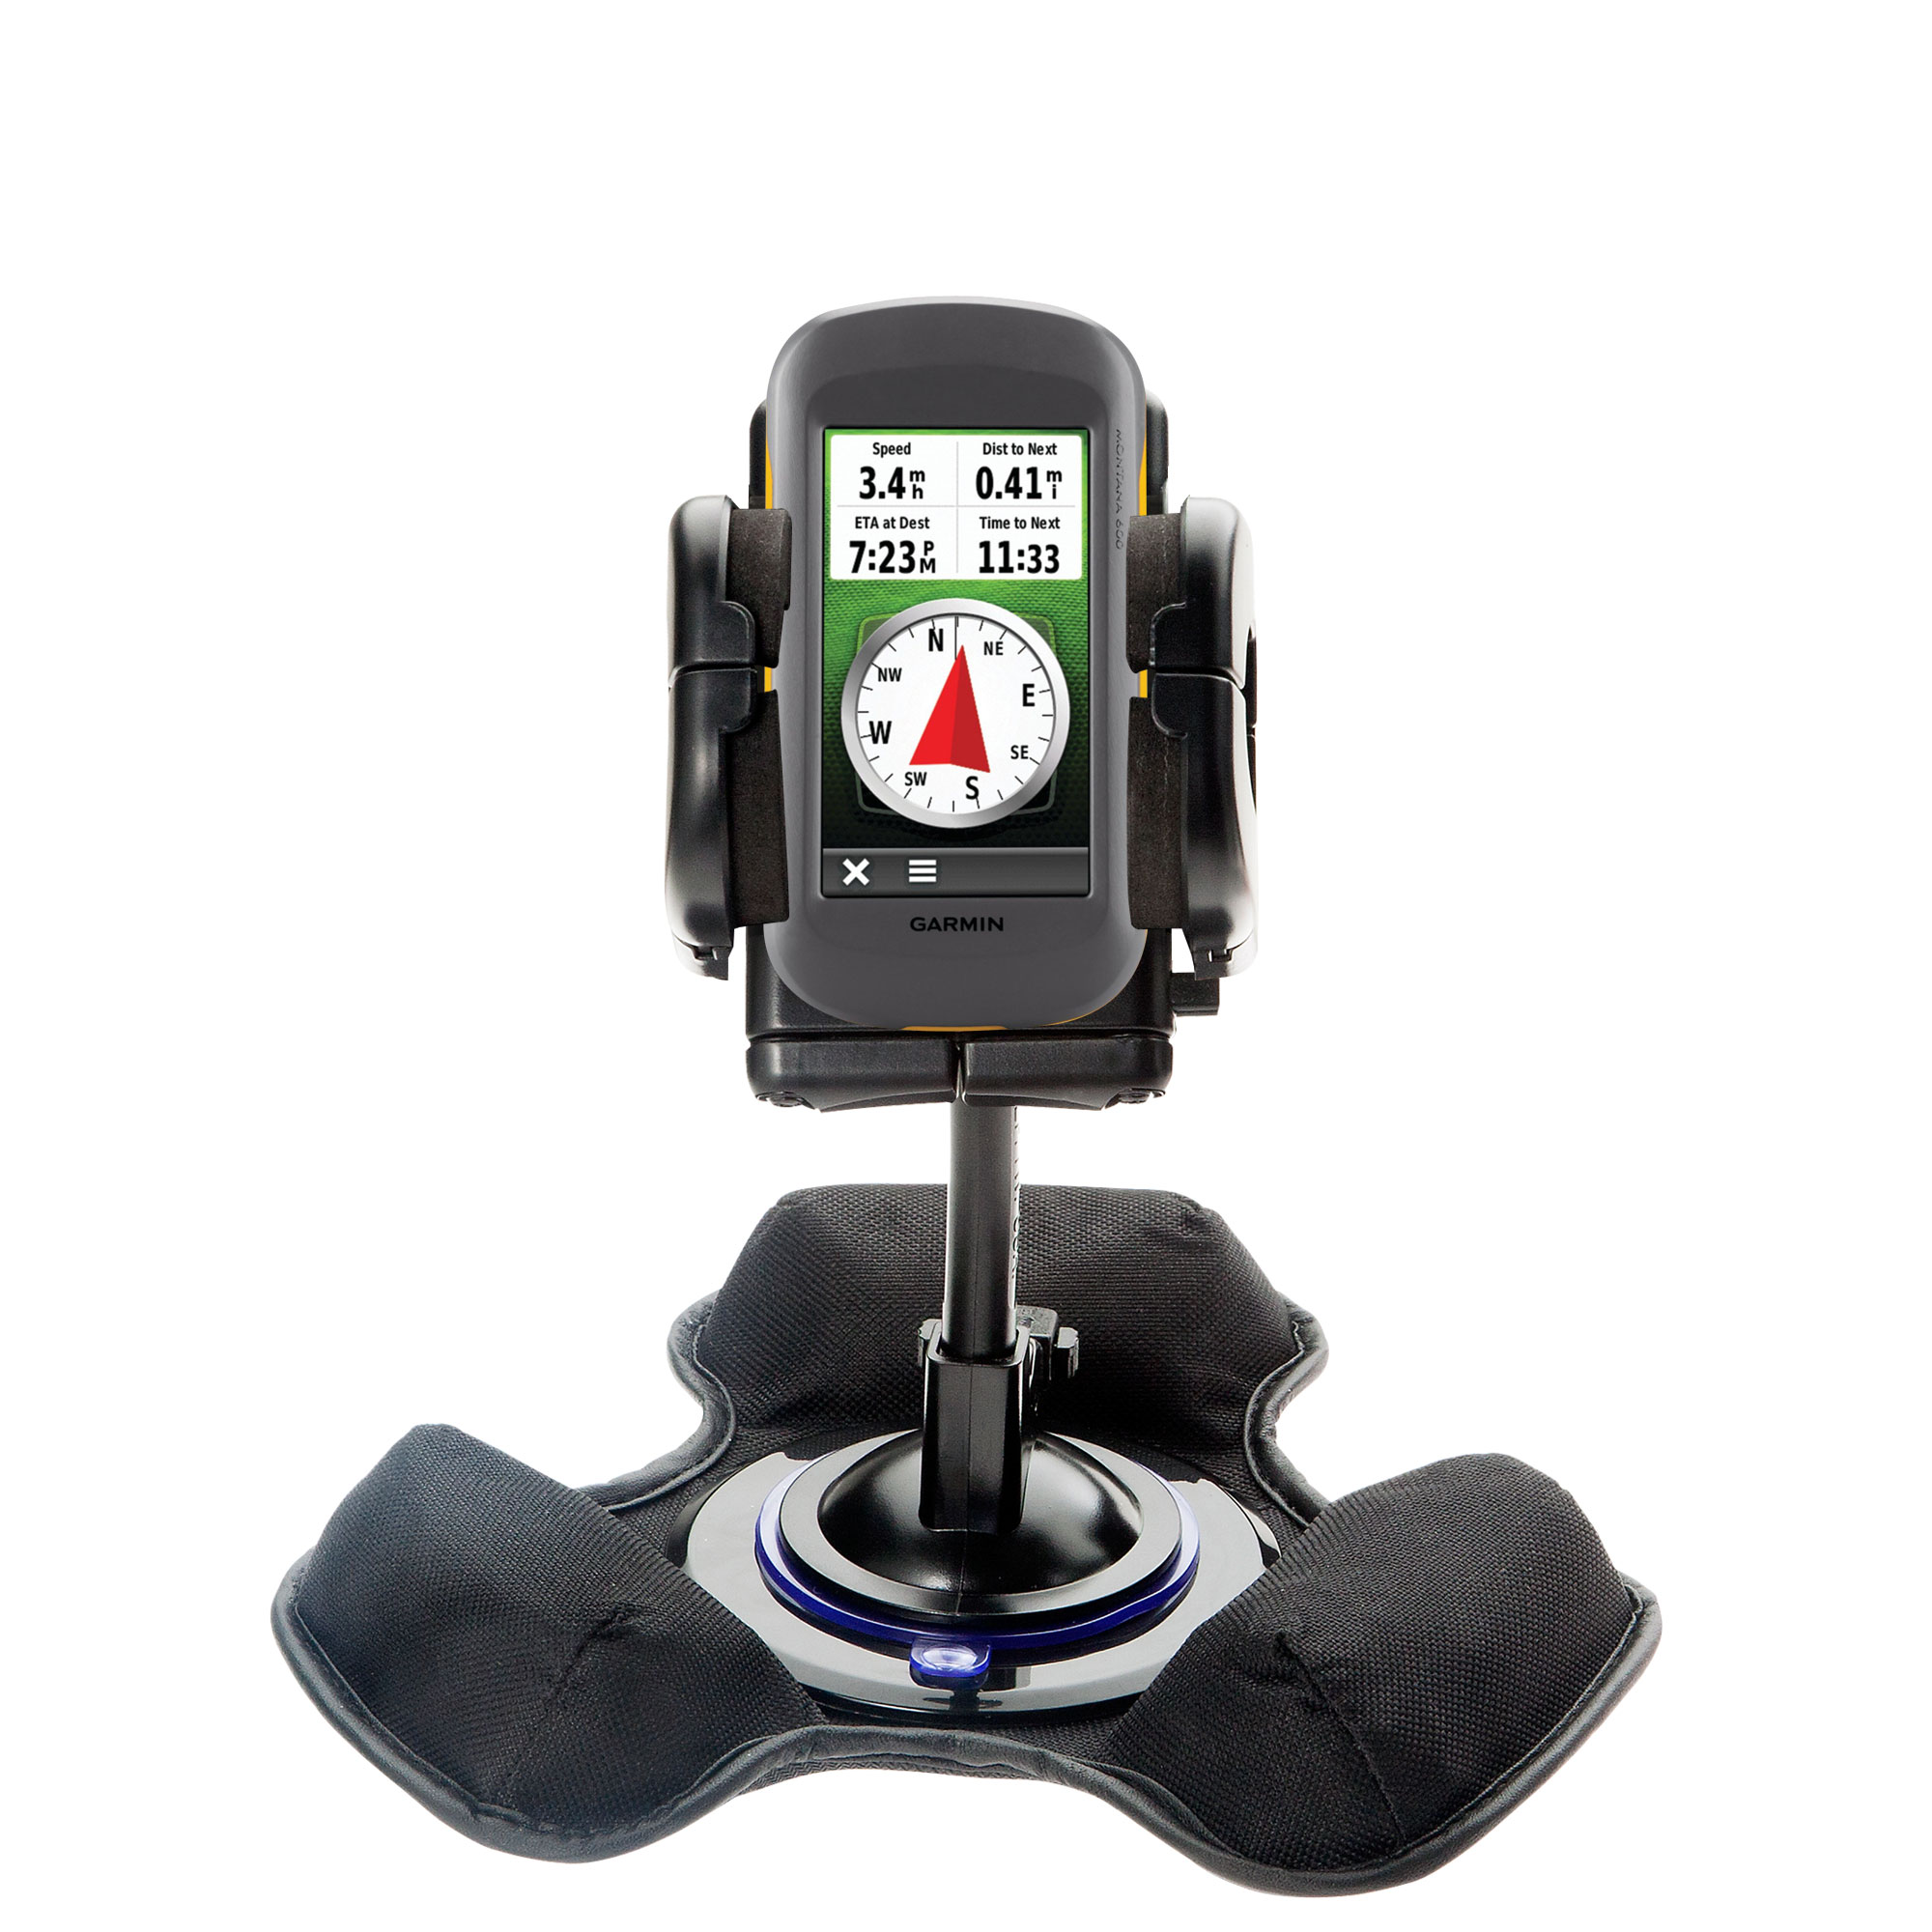 Dash and Windshield Holder compatible with the Garmin Montana 600 650 650t